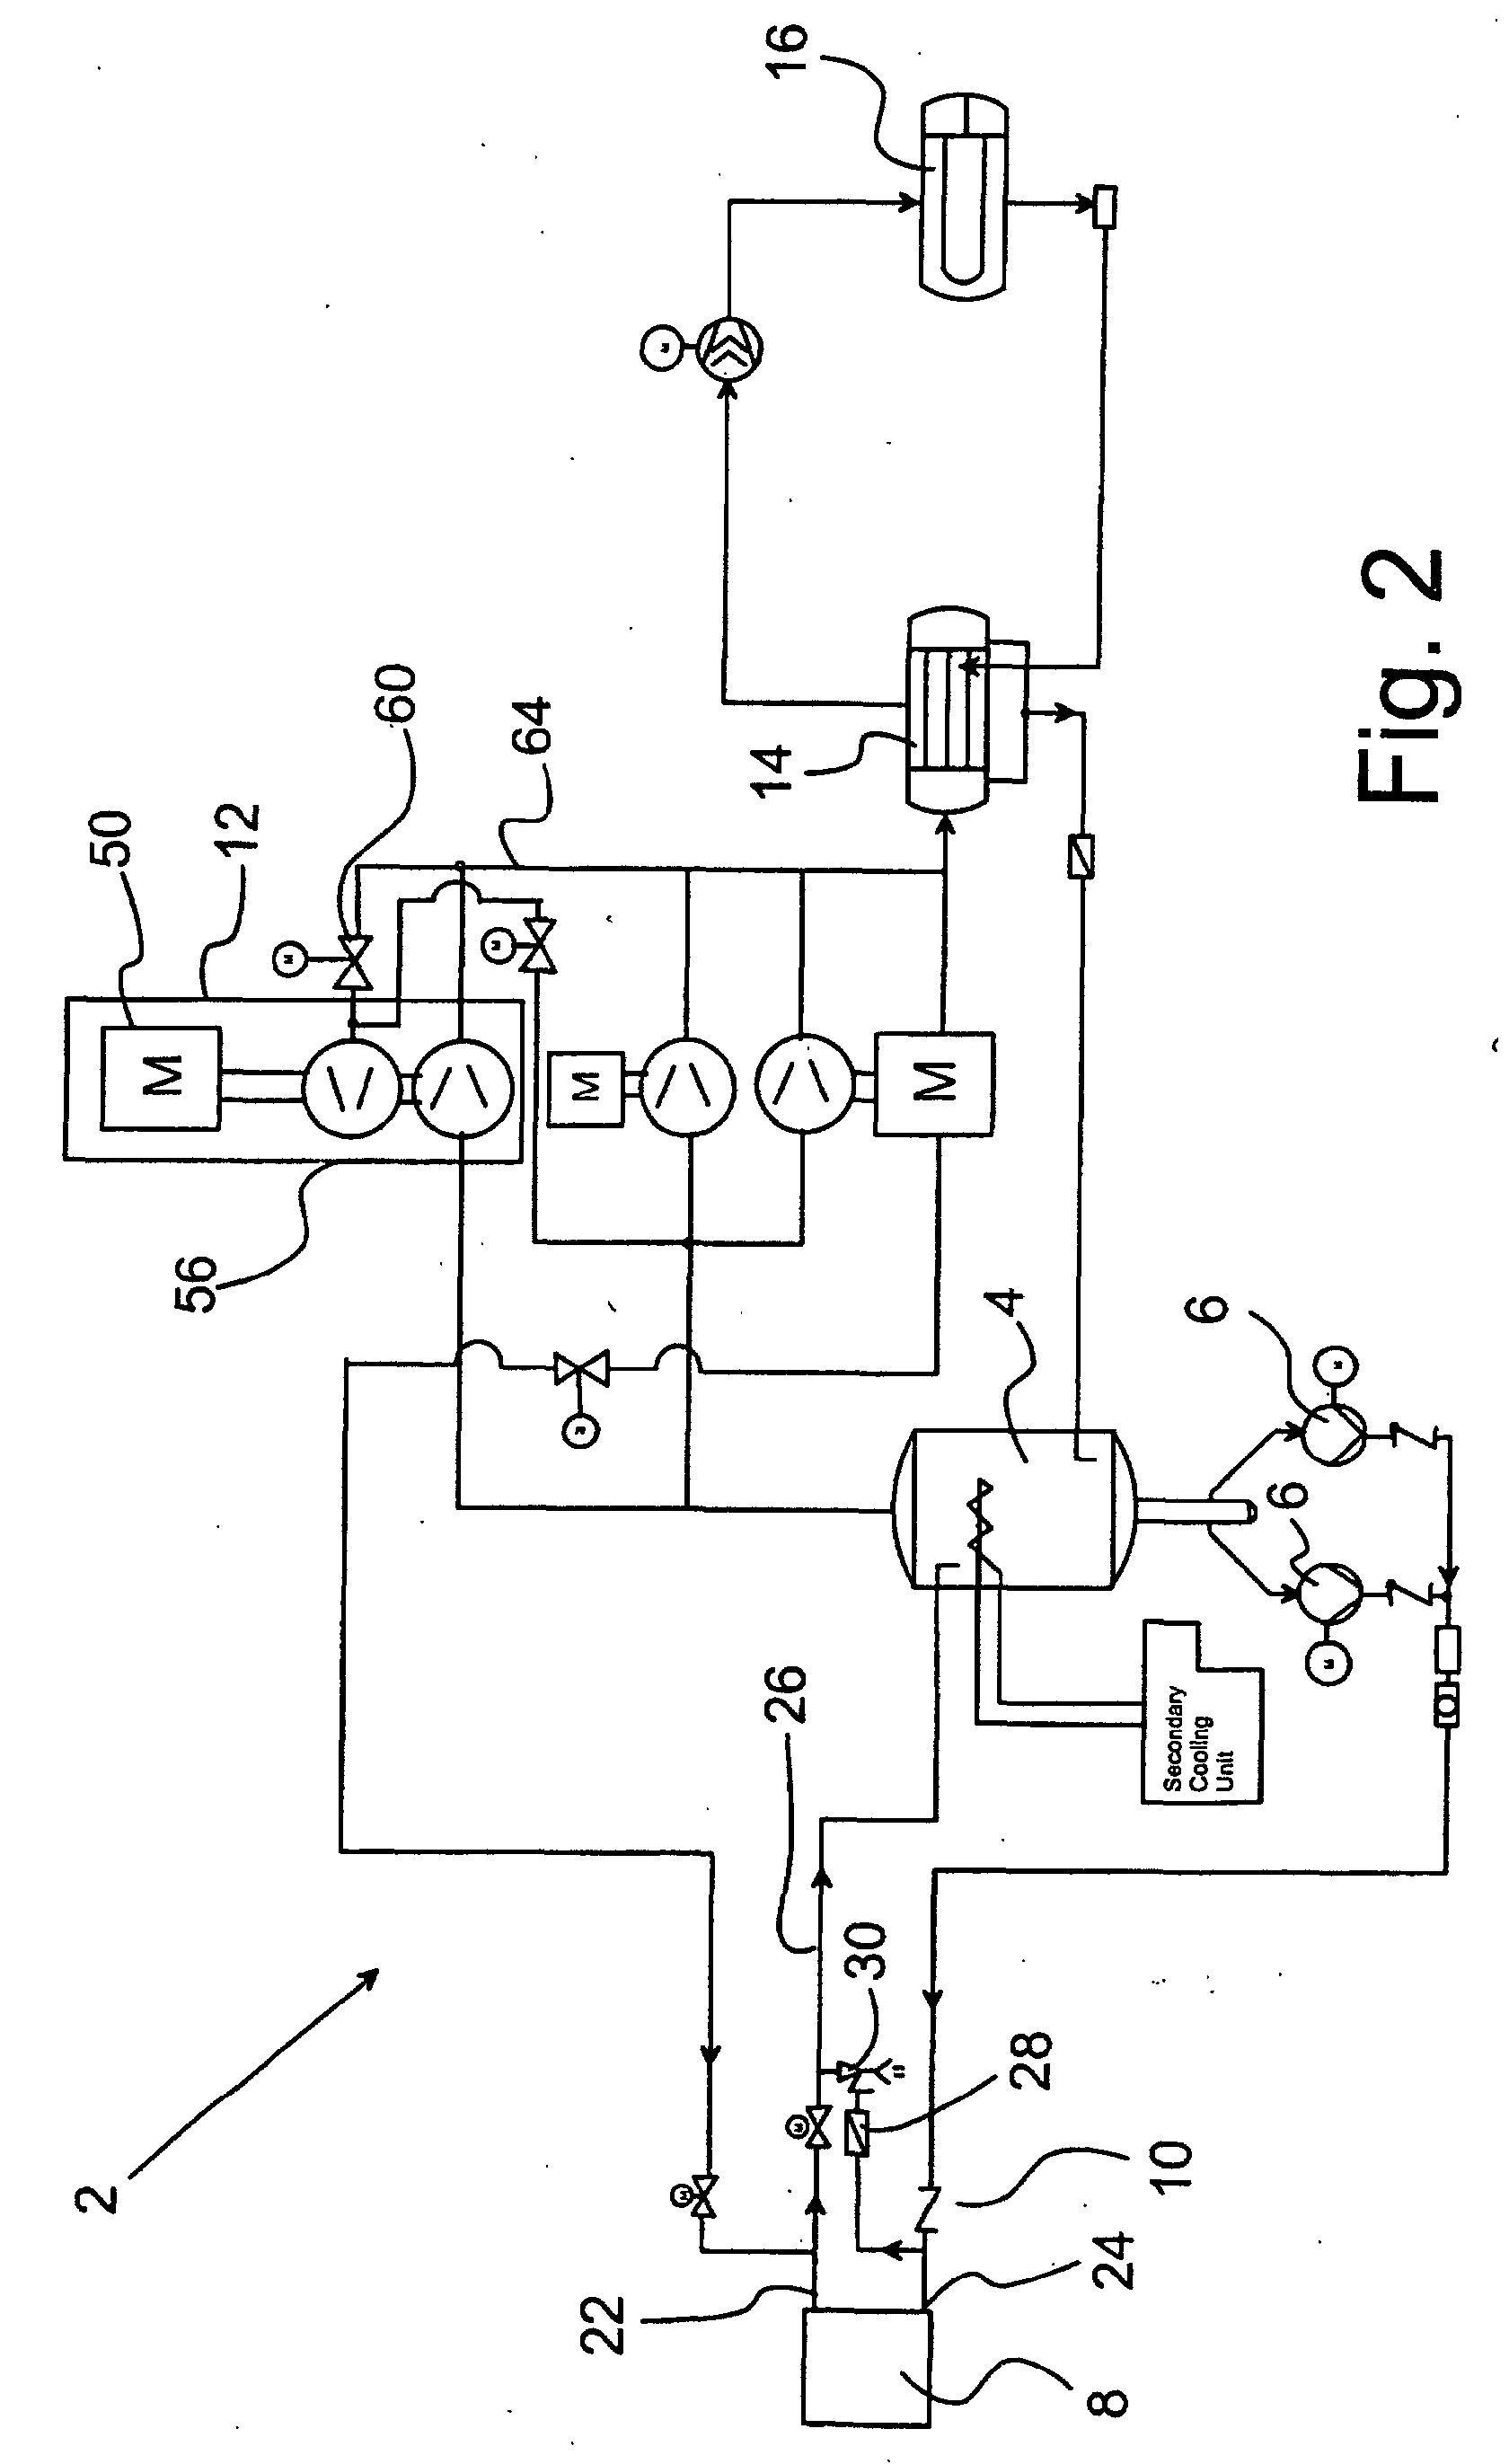 larkin evaporator wiring diagram   32 wiring diagram